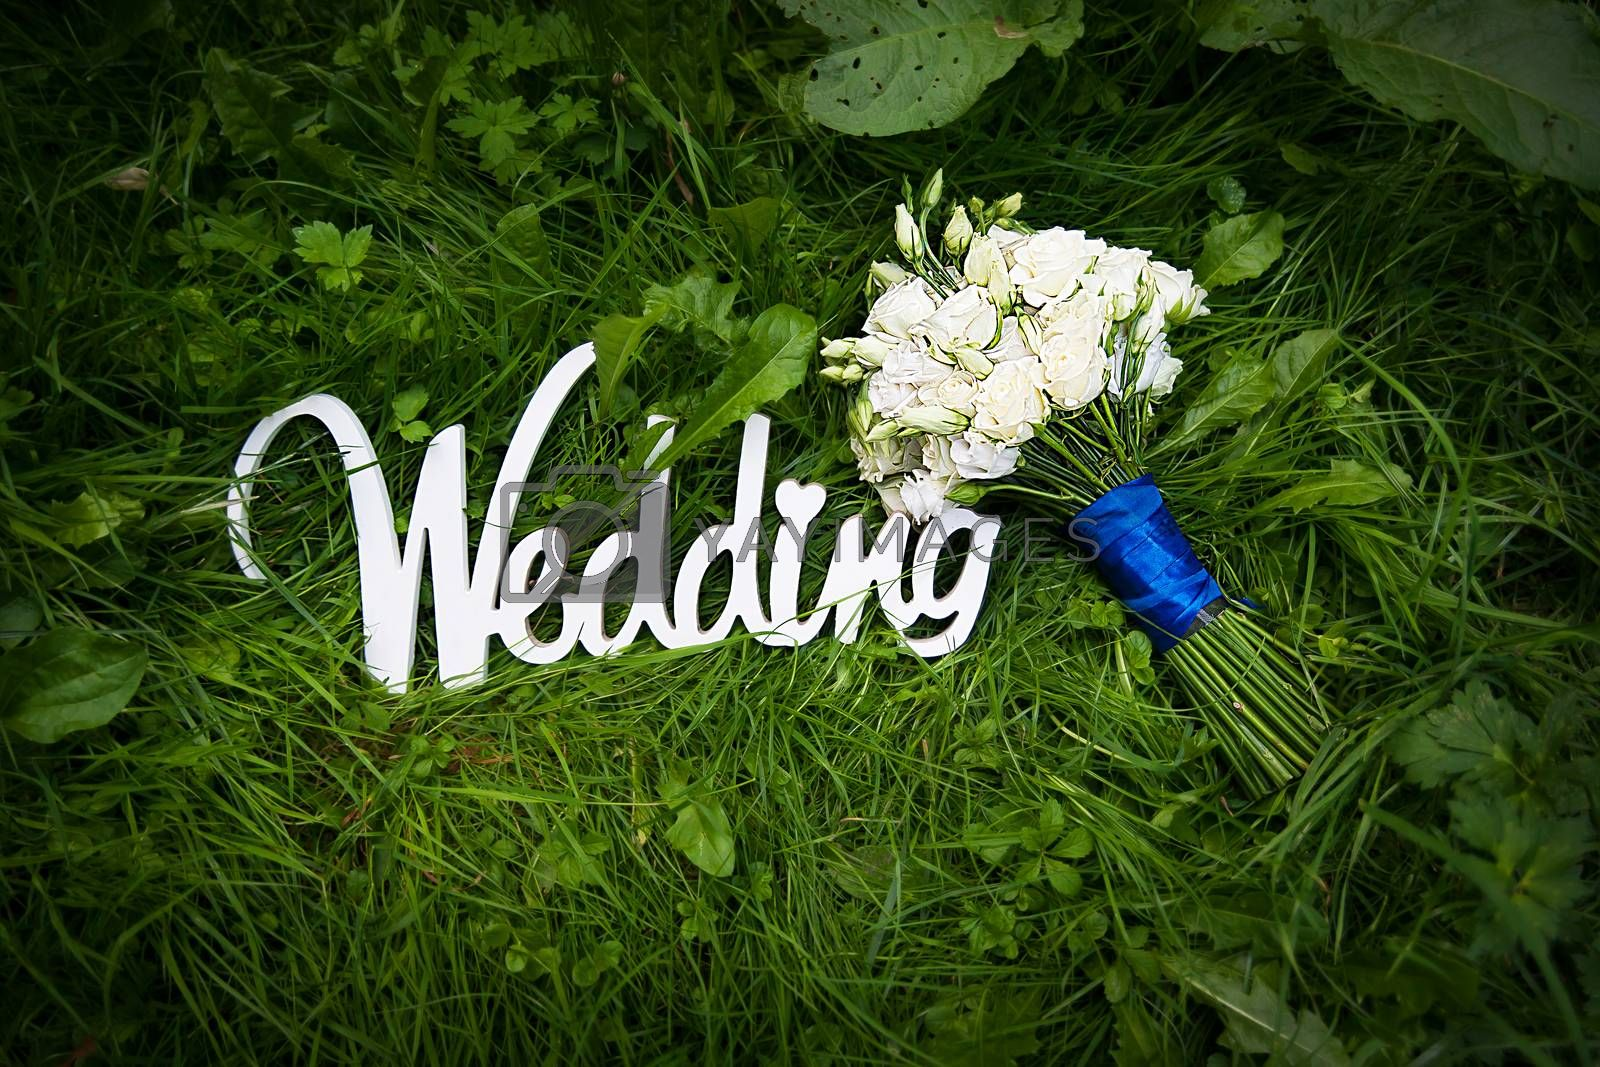 Royalty free image of wedding letters with white flowers on grass by sfinks